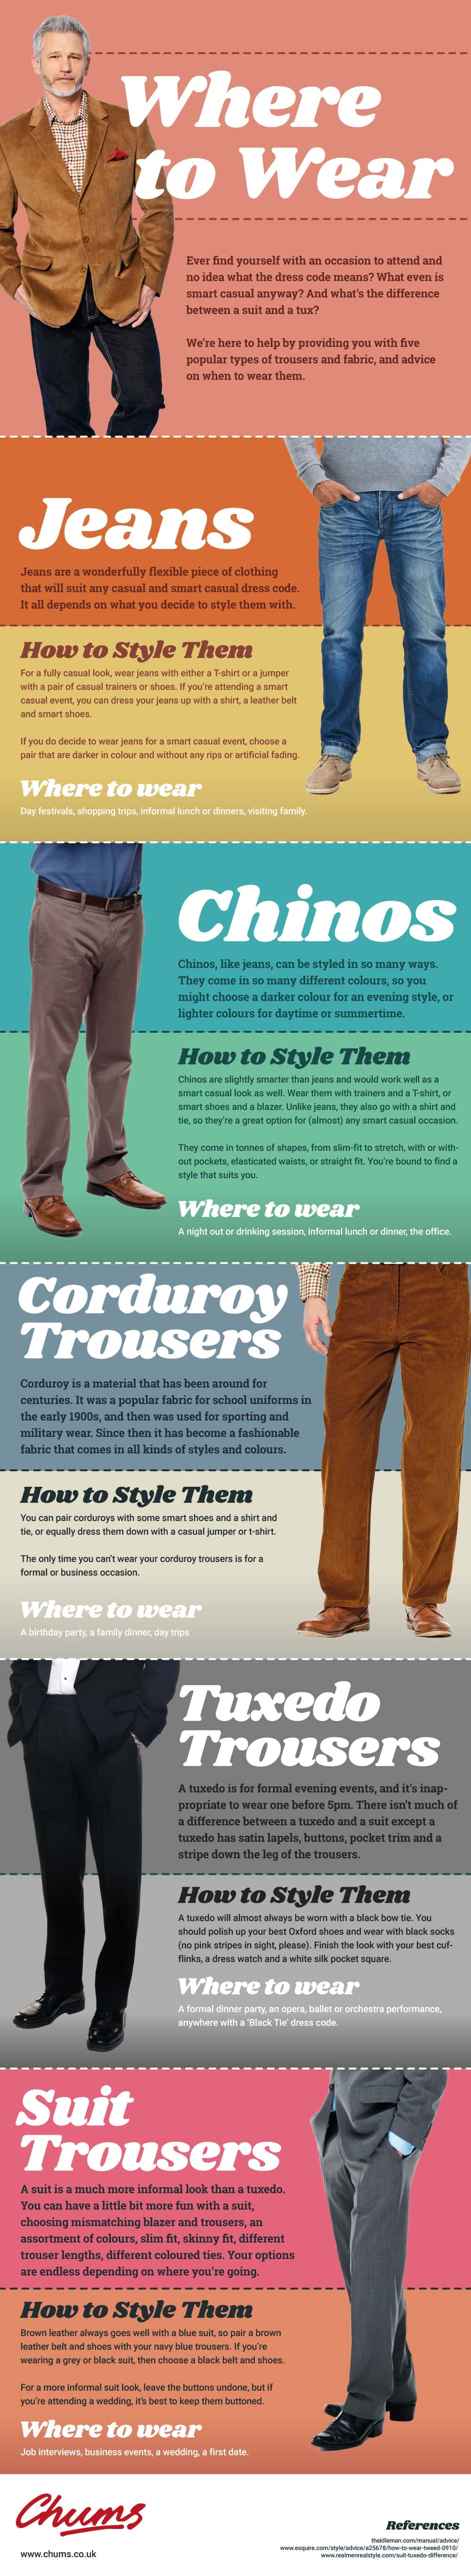 Where to Wear infographic